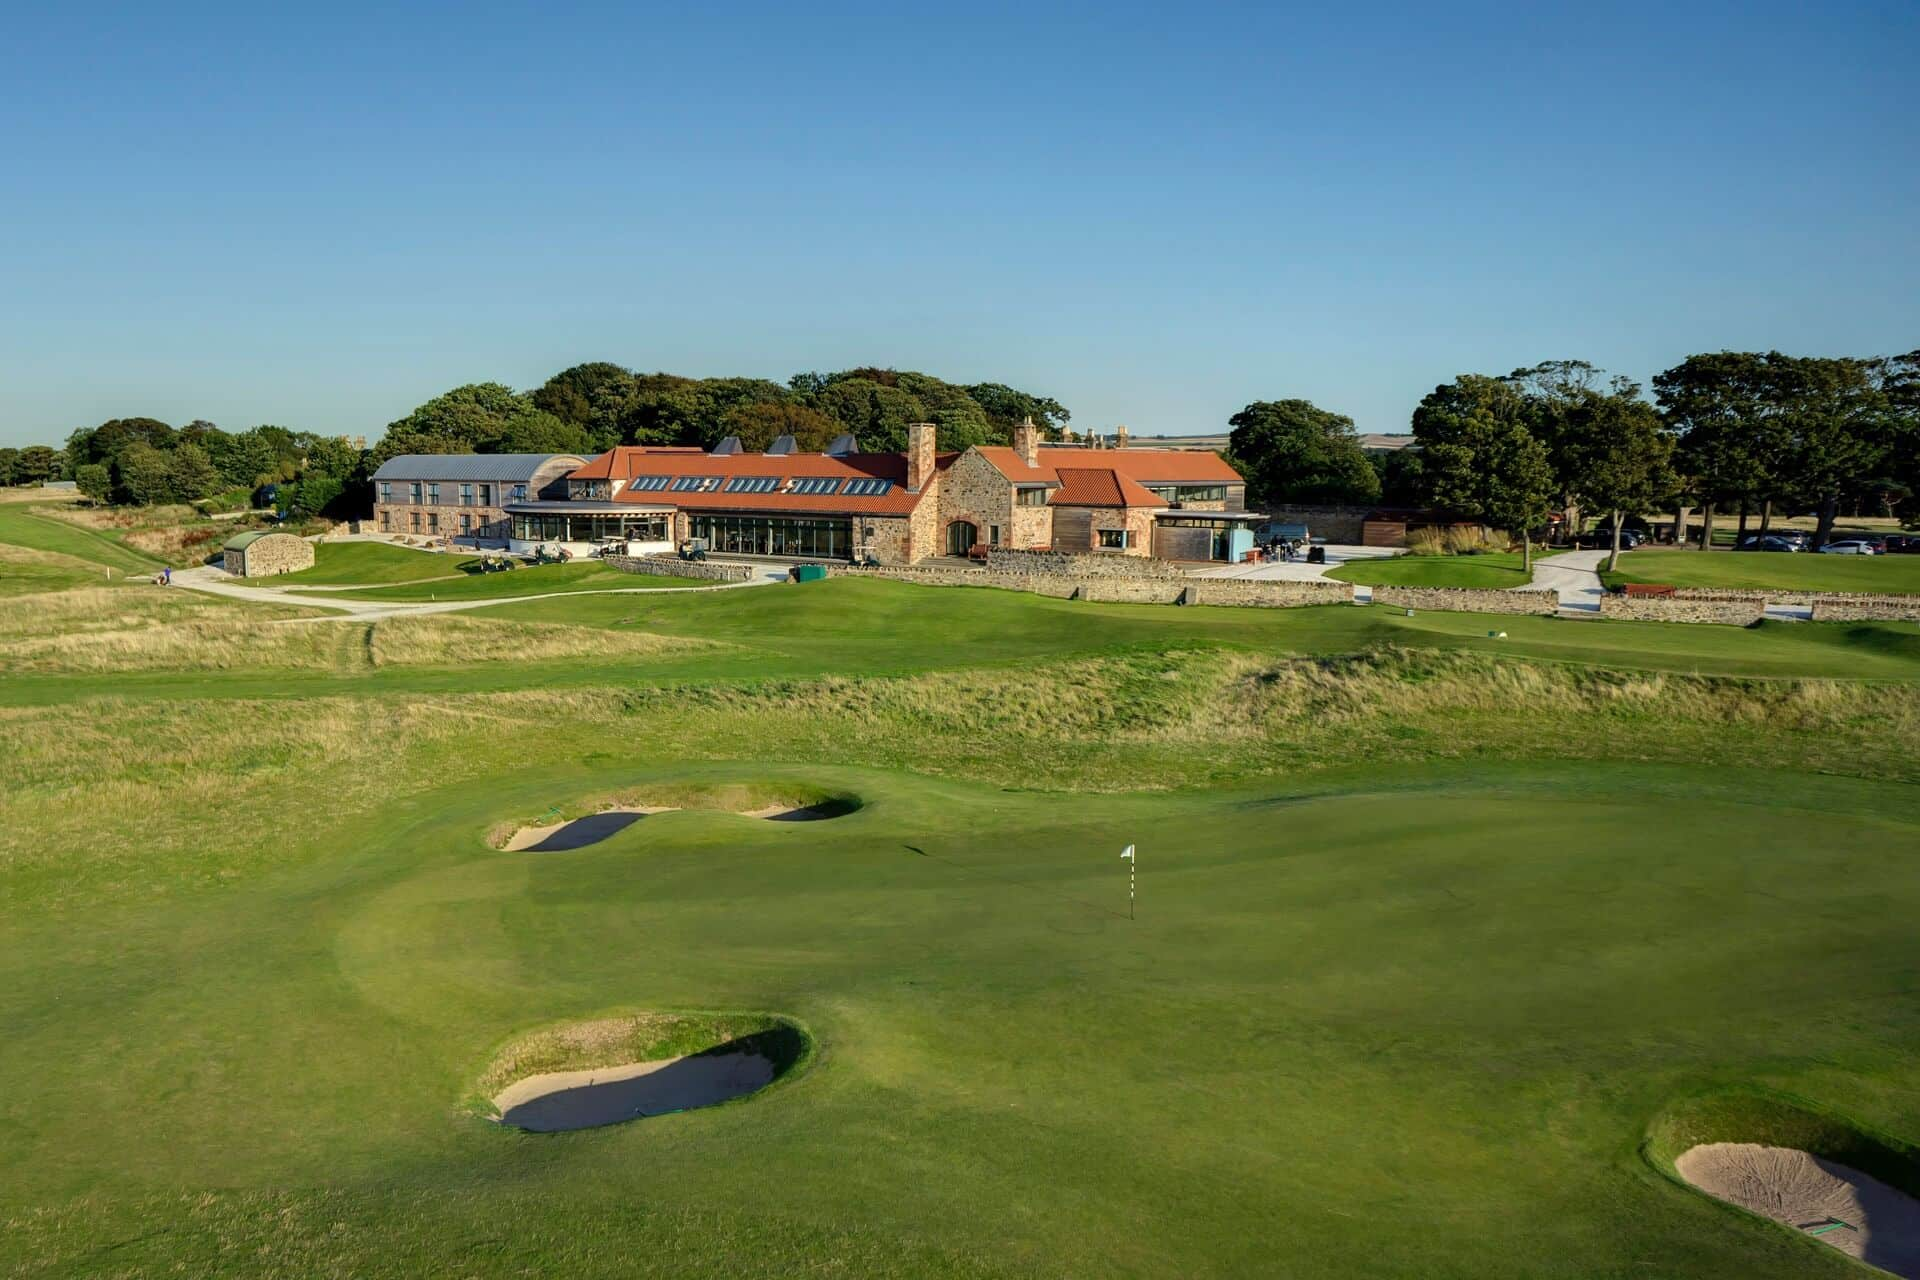 The 9th Green and clubhouse at Craigielaw Golf Club